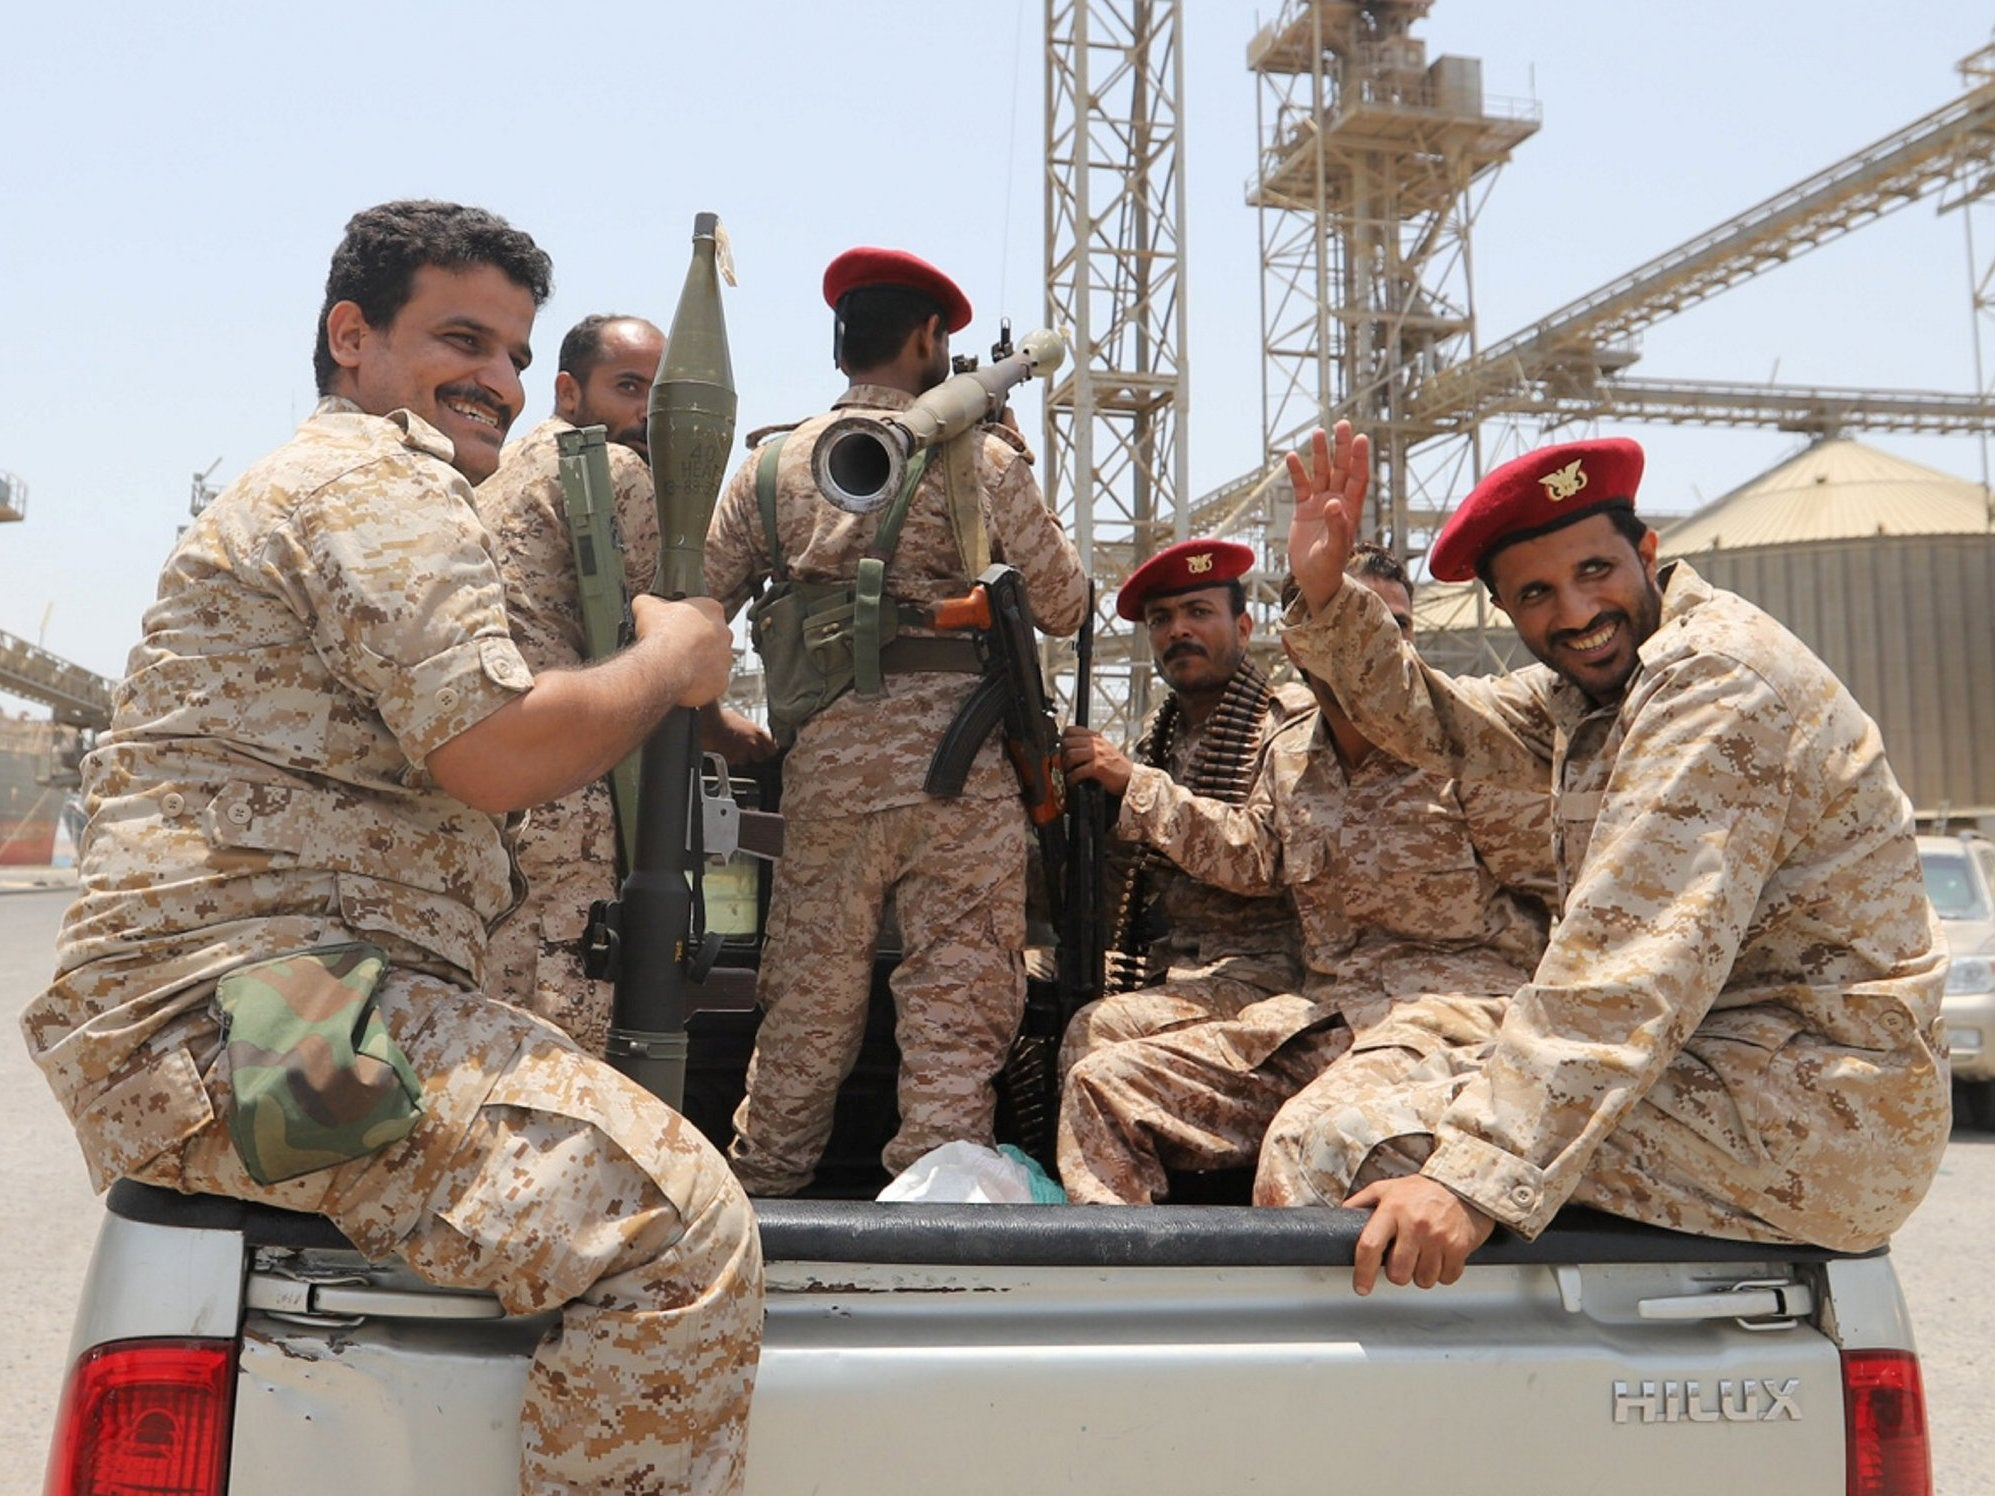 Houthi rebels - latest news, breaking stories and comment - The